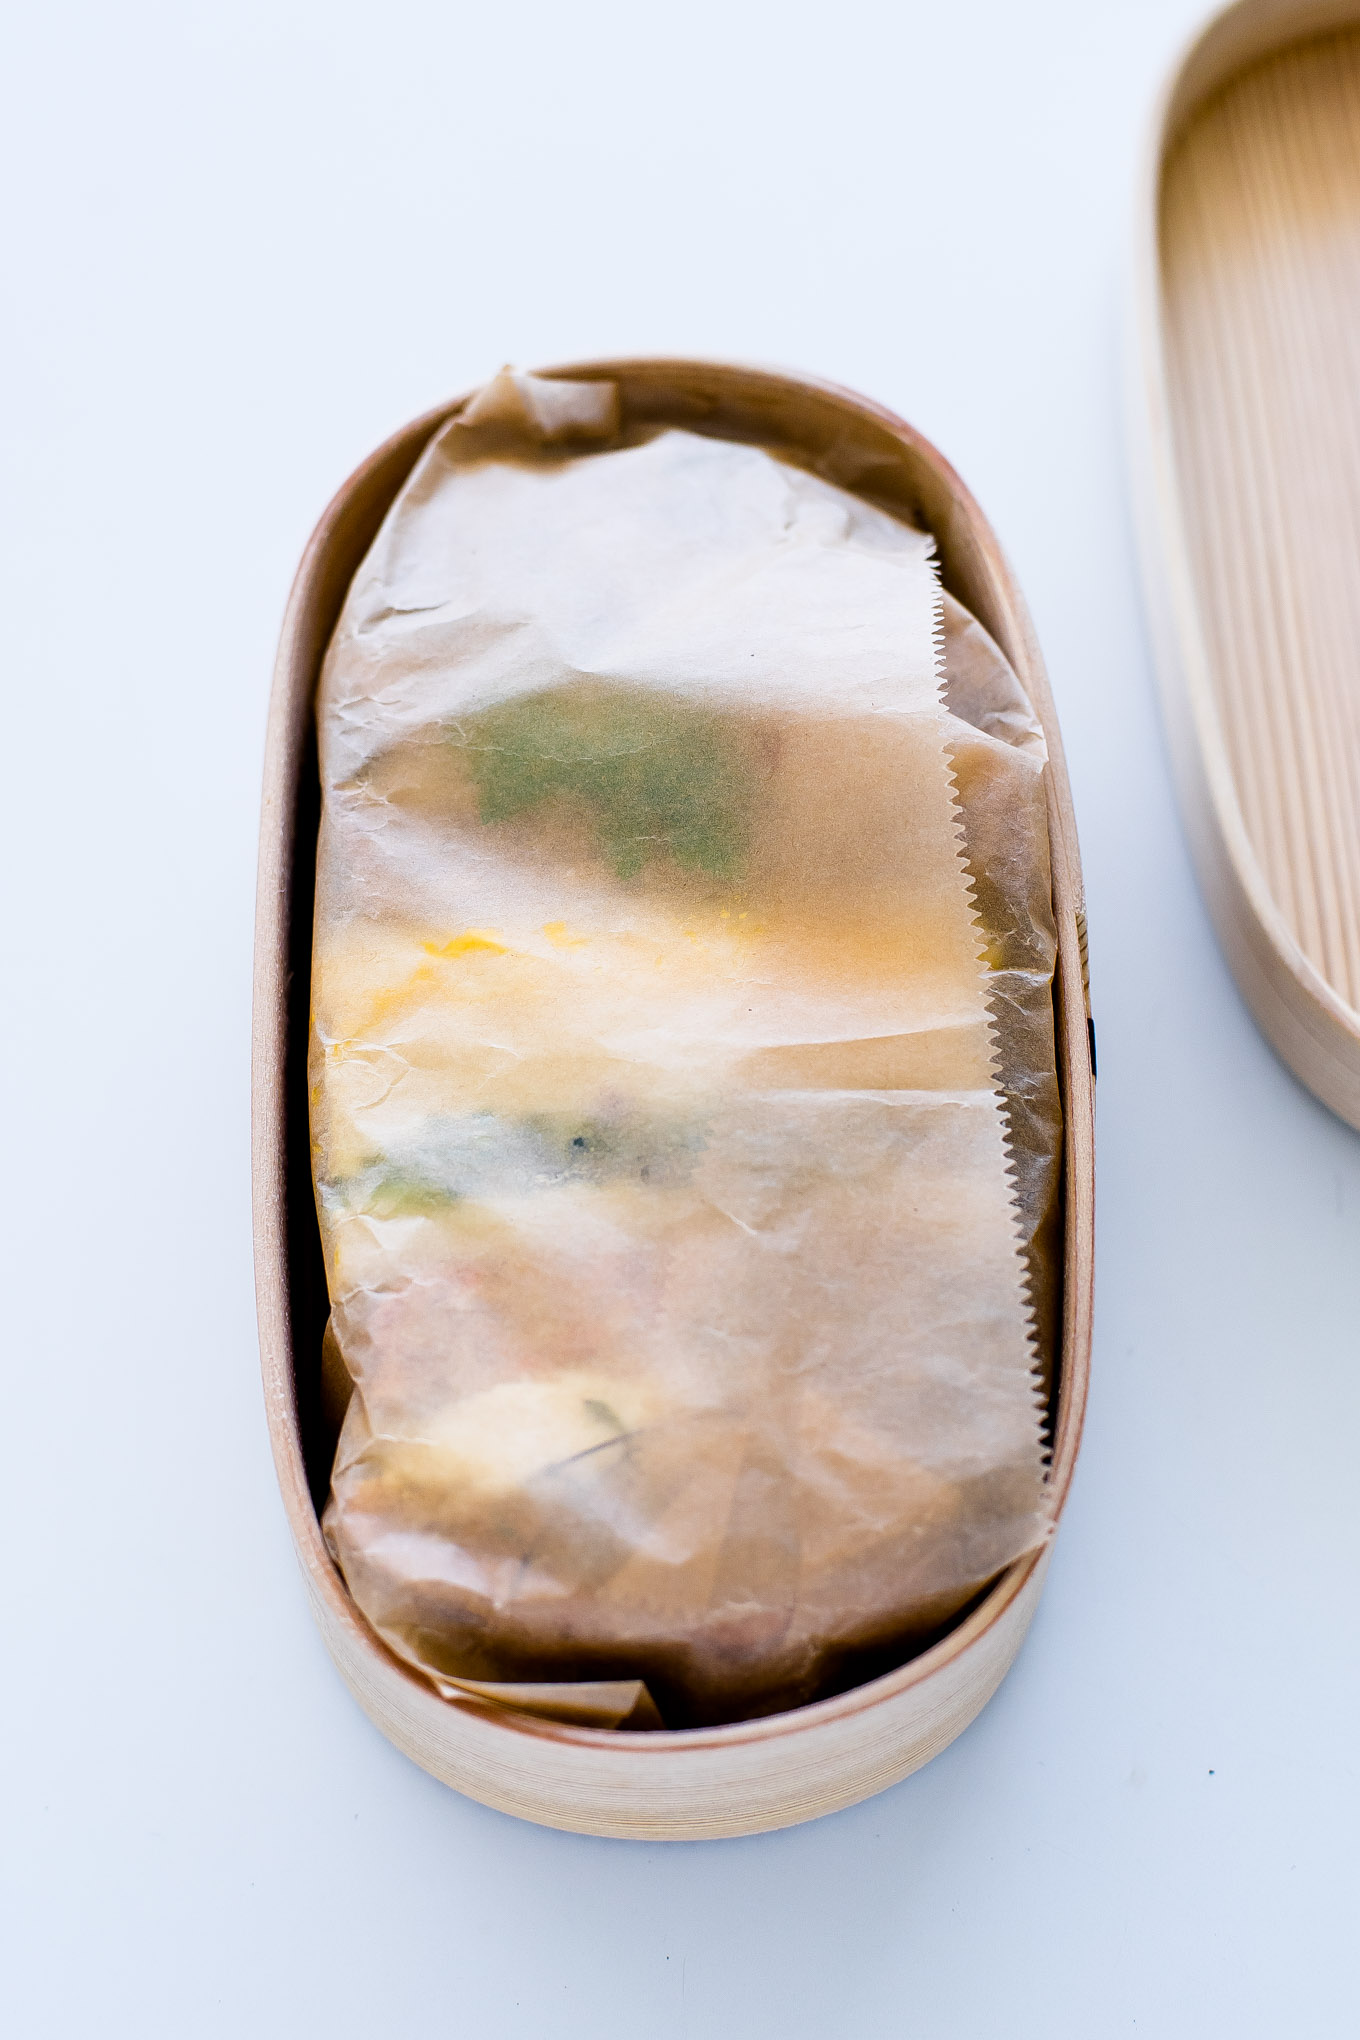 how-to-pack-a-sandwich-in-magewappa-bento-7